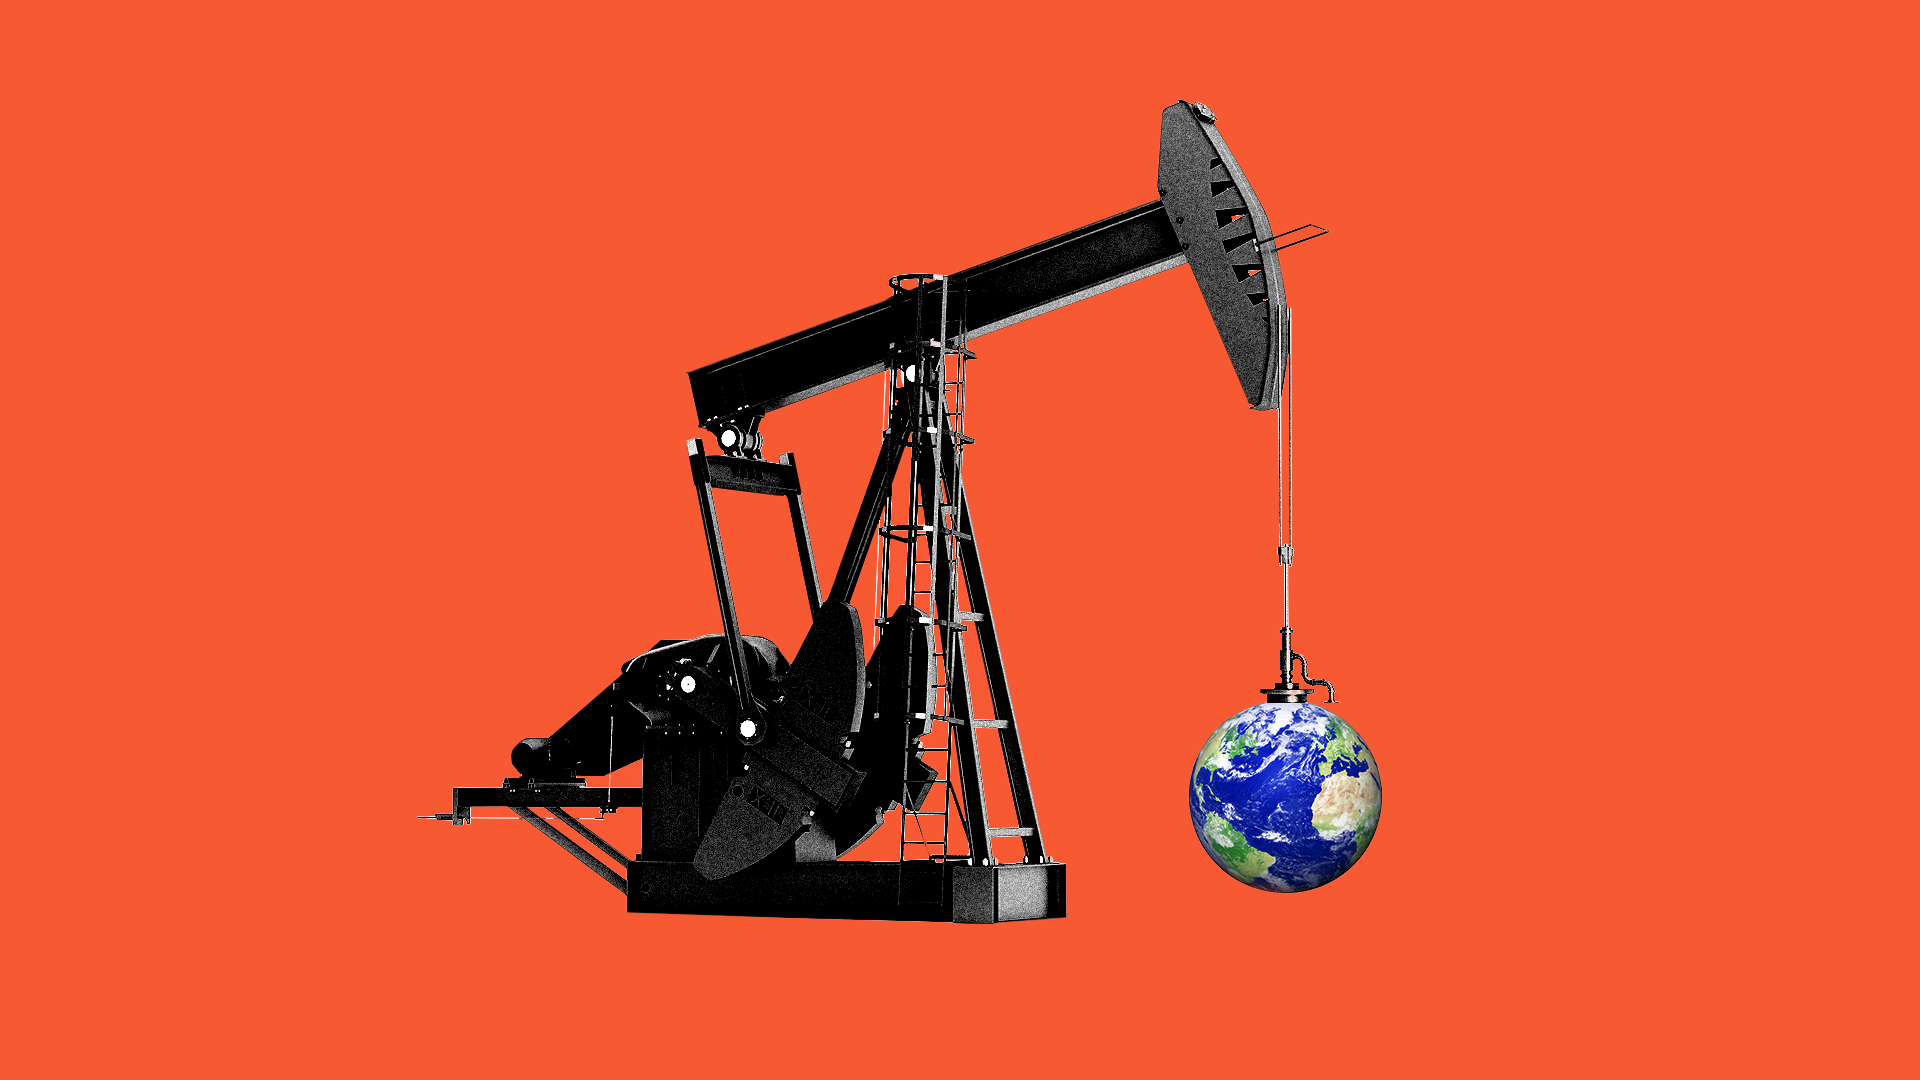 Oil pump jack holding up a planet Earth.